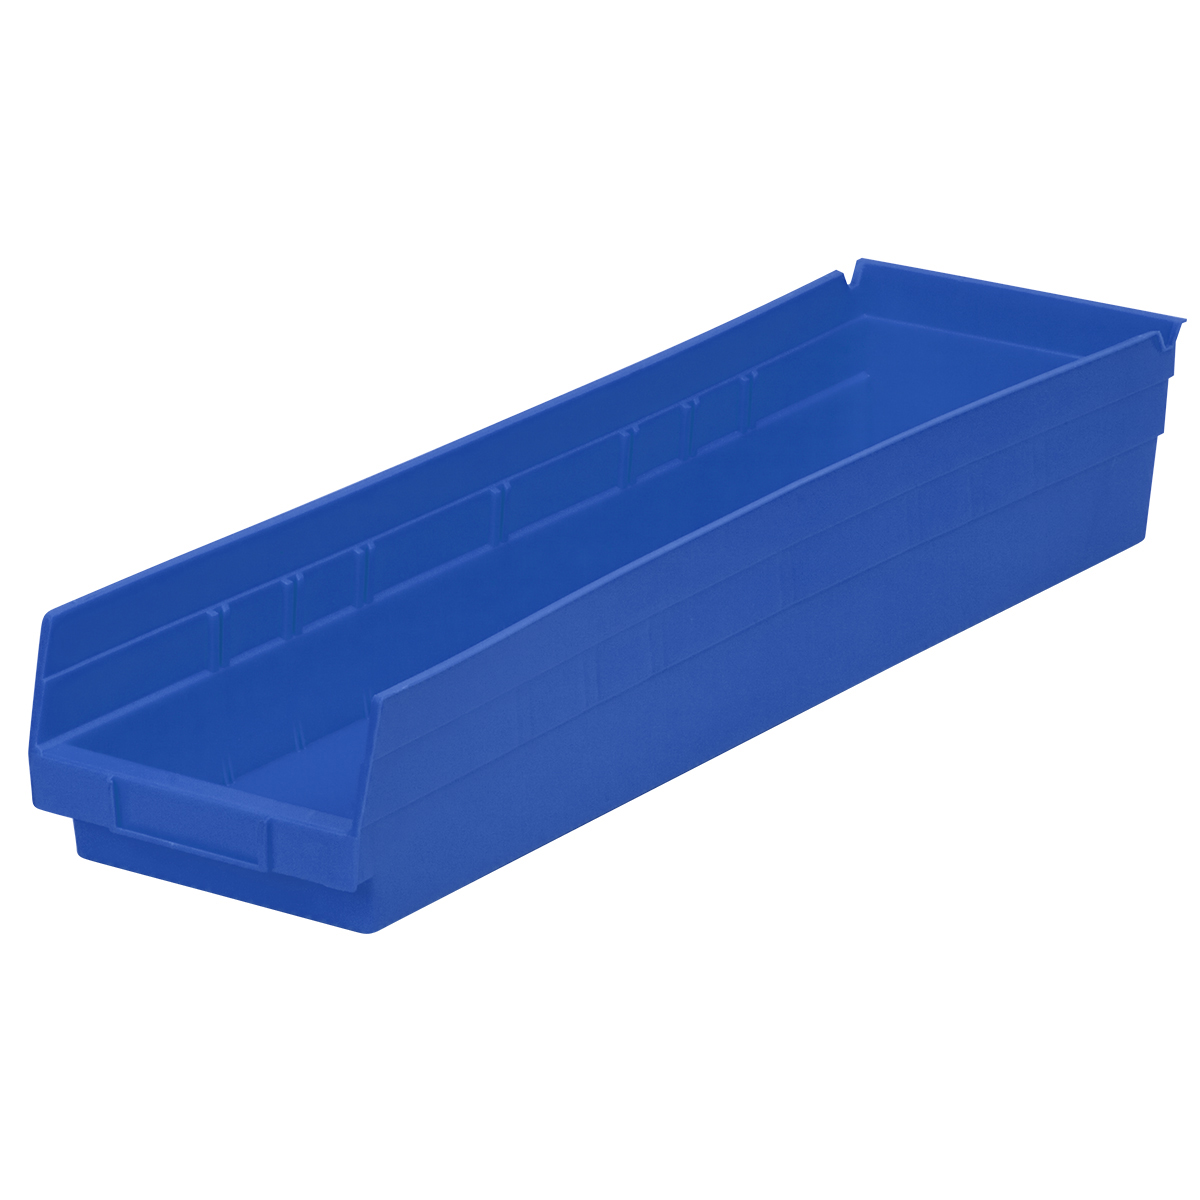 Shelf Bin 23-5/8 x 6-5/8 x 4, Blue (30164BLUE).  This item sold in carton quantities of 6.